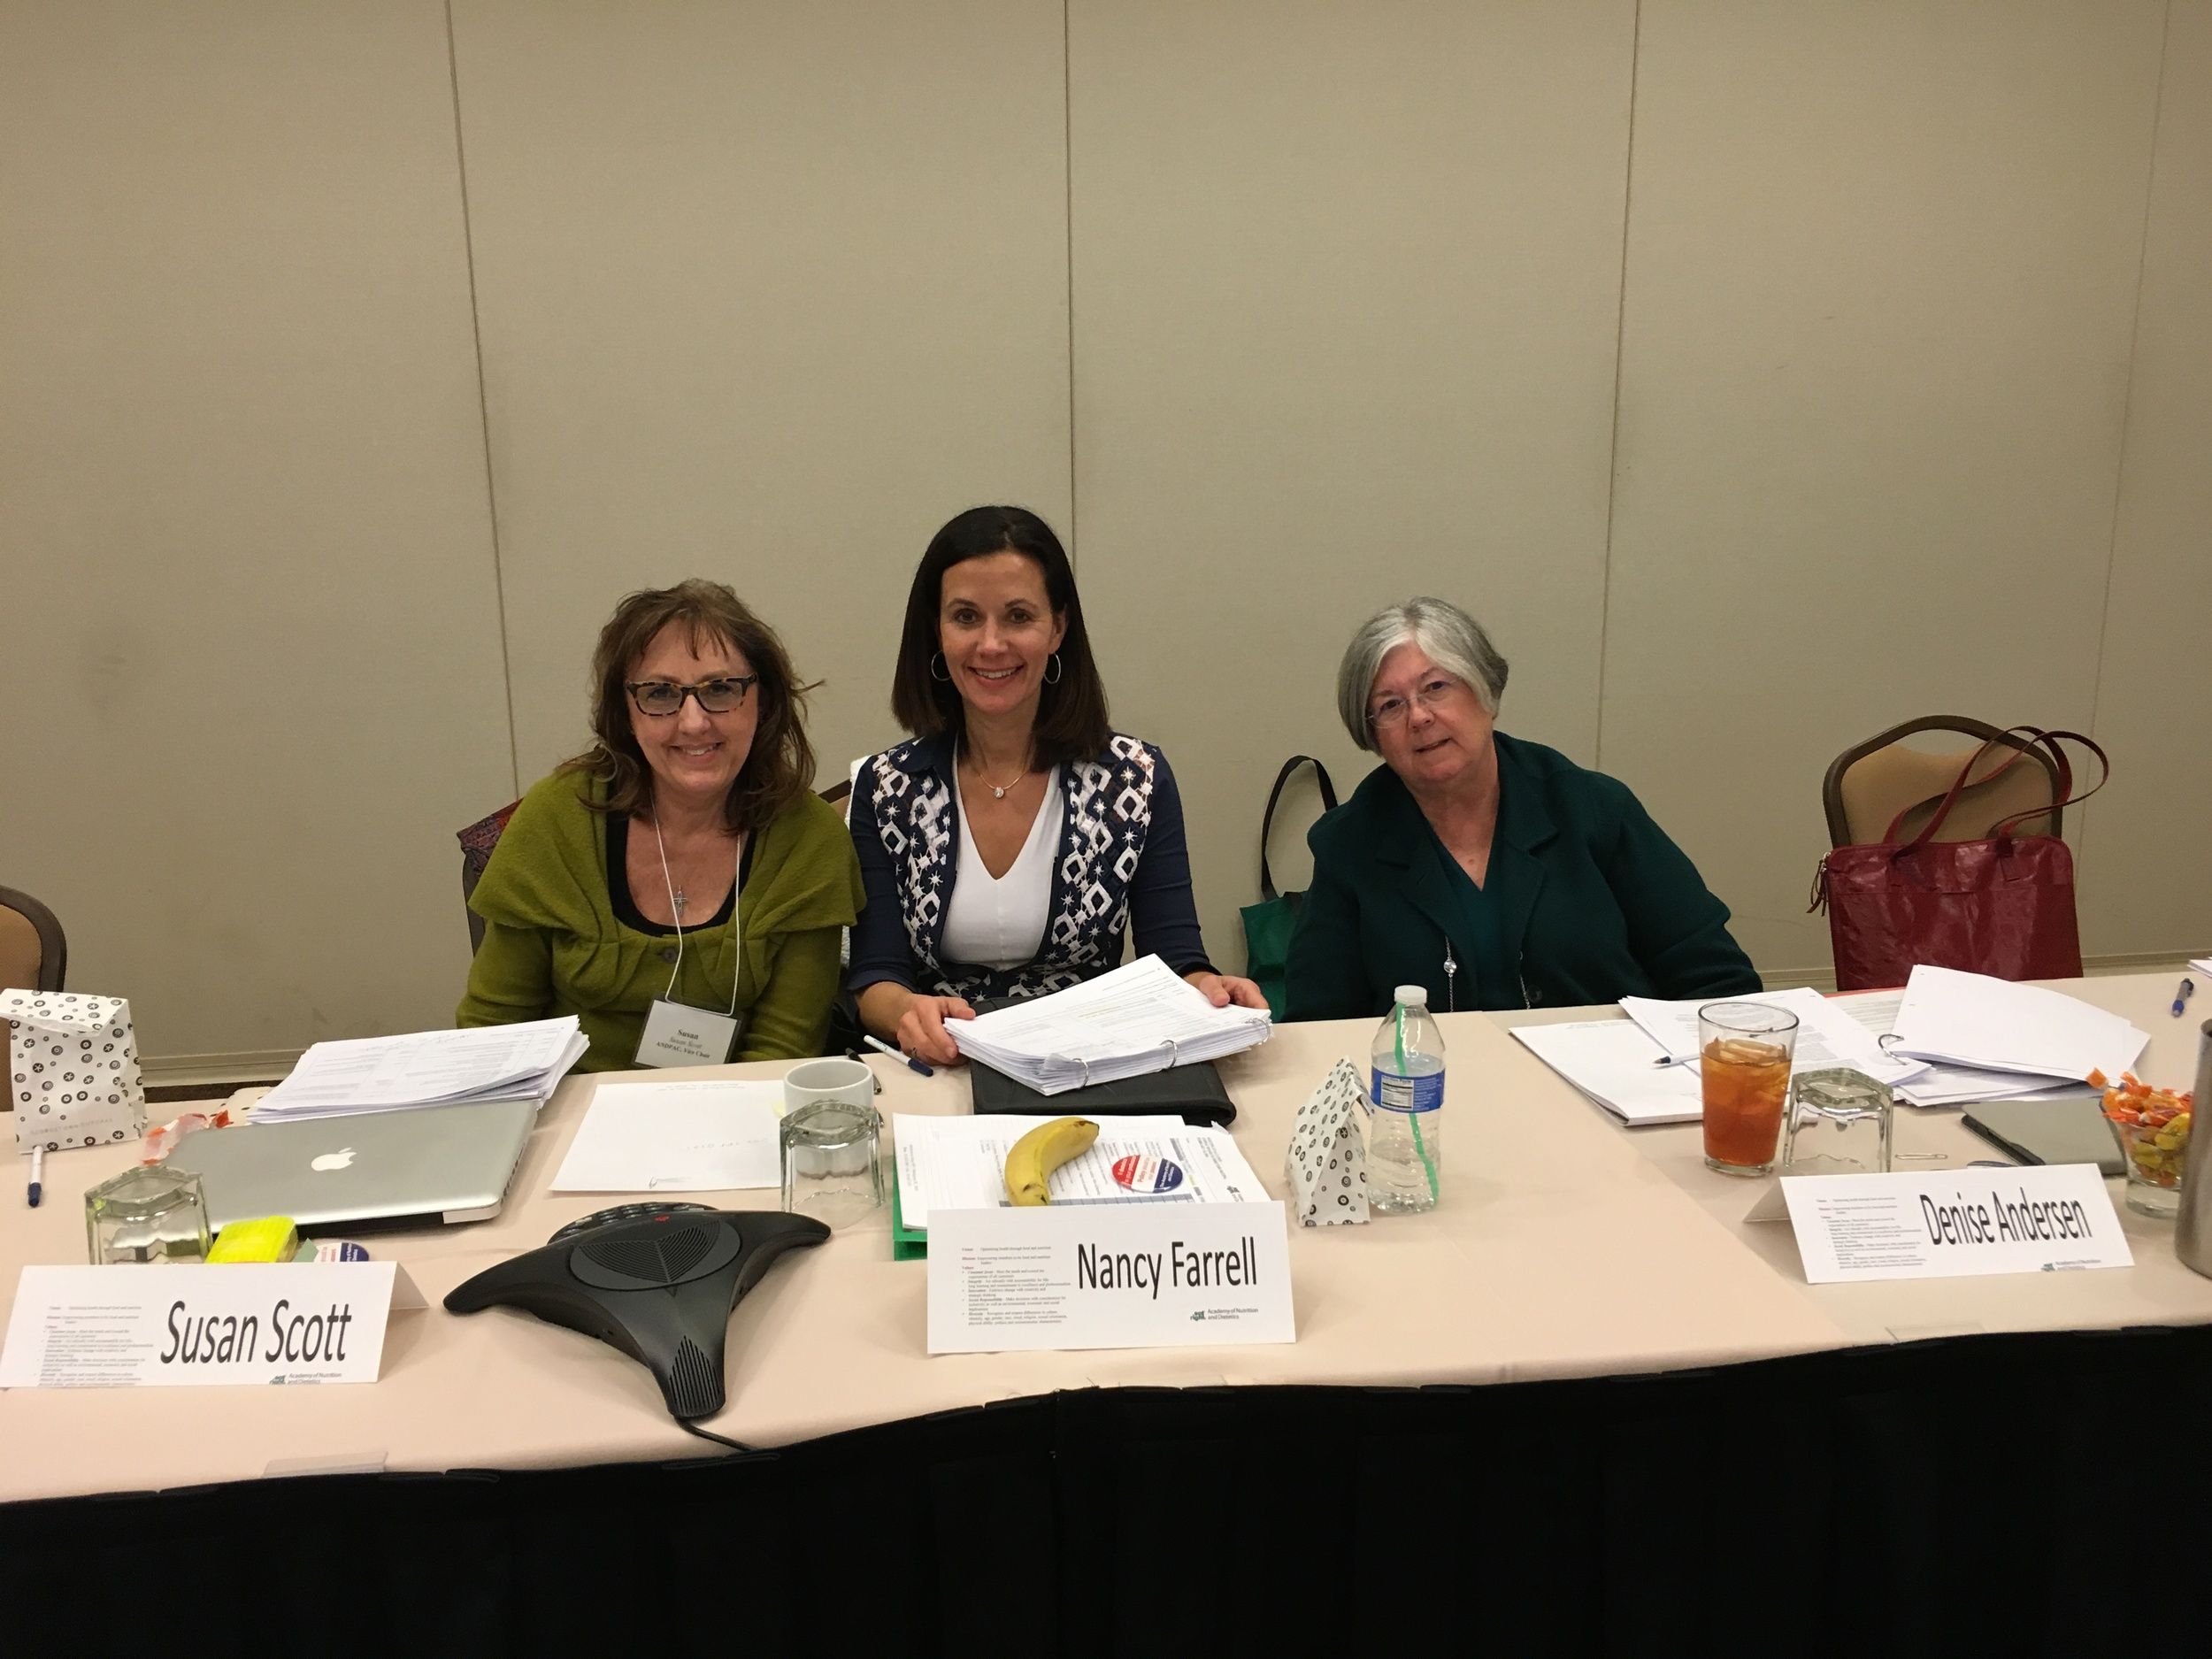 As ANDPAC Chair consulting with my Vice Chair and Past Chair